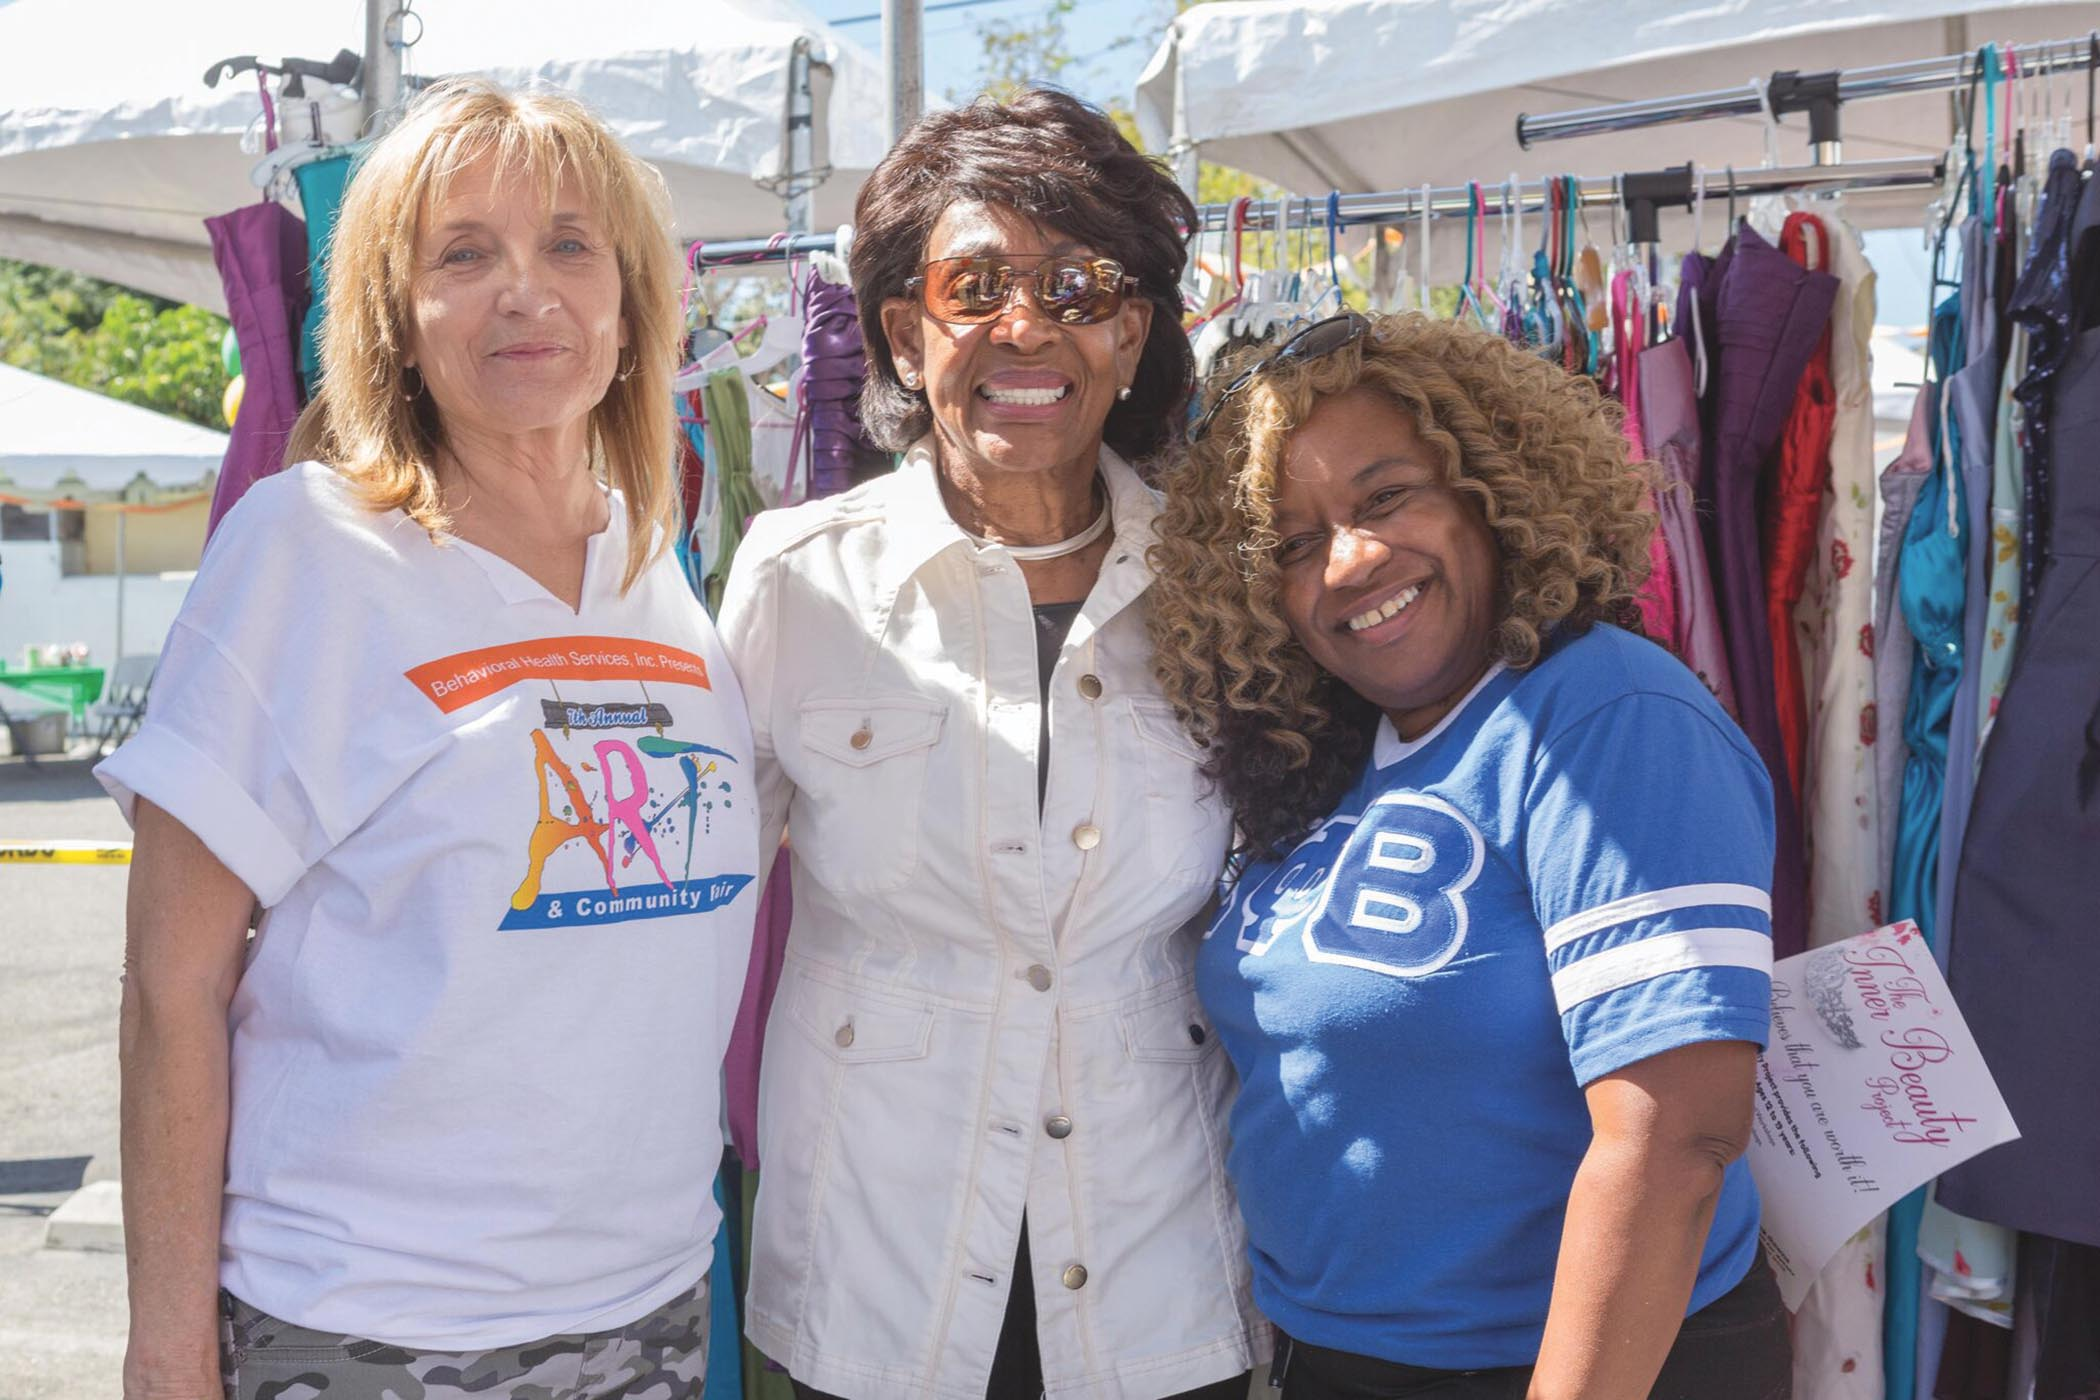 Congresswoman Maxine Waters and BHS Chief Executive Officer, Shirley Summers, at the 2018 Behavioral Health Services Community Fair on Saturday, September 29. (Photo courtesy of Behavioral Health Services)